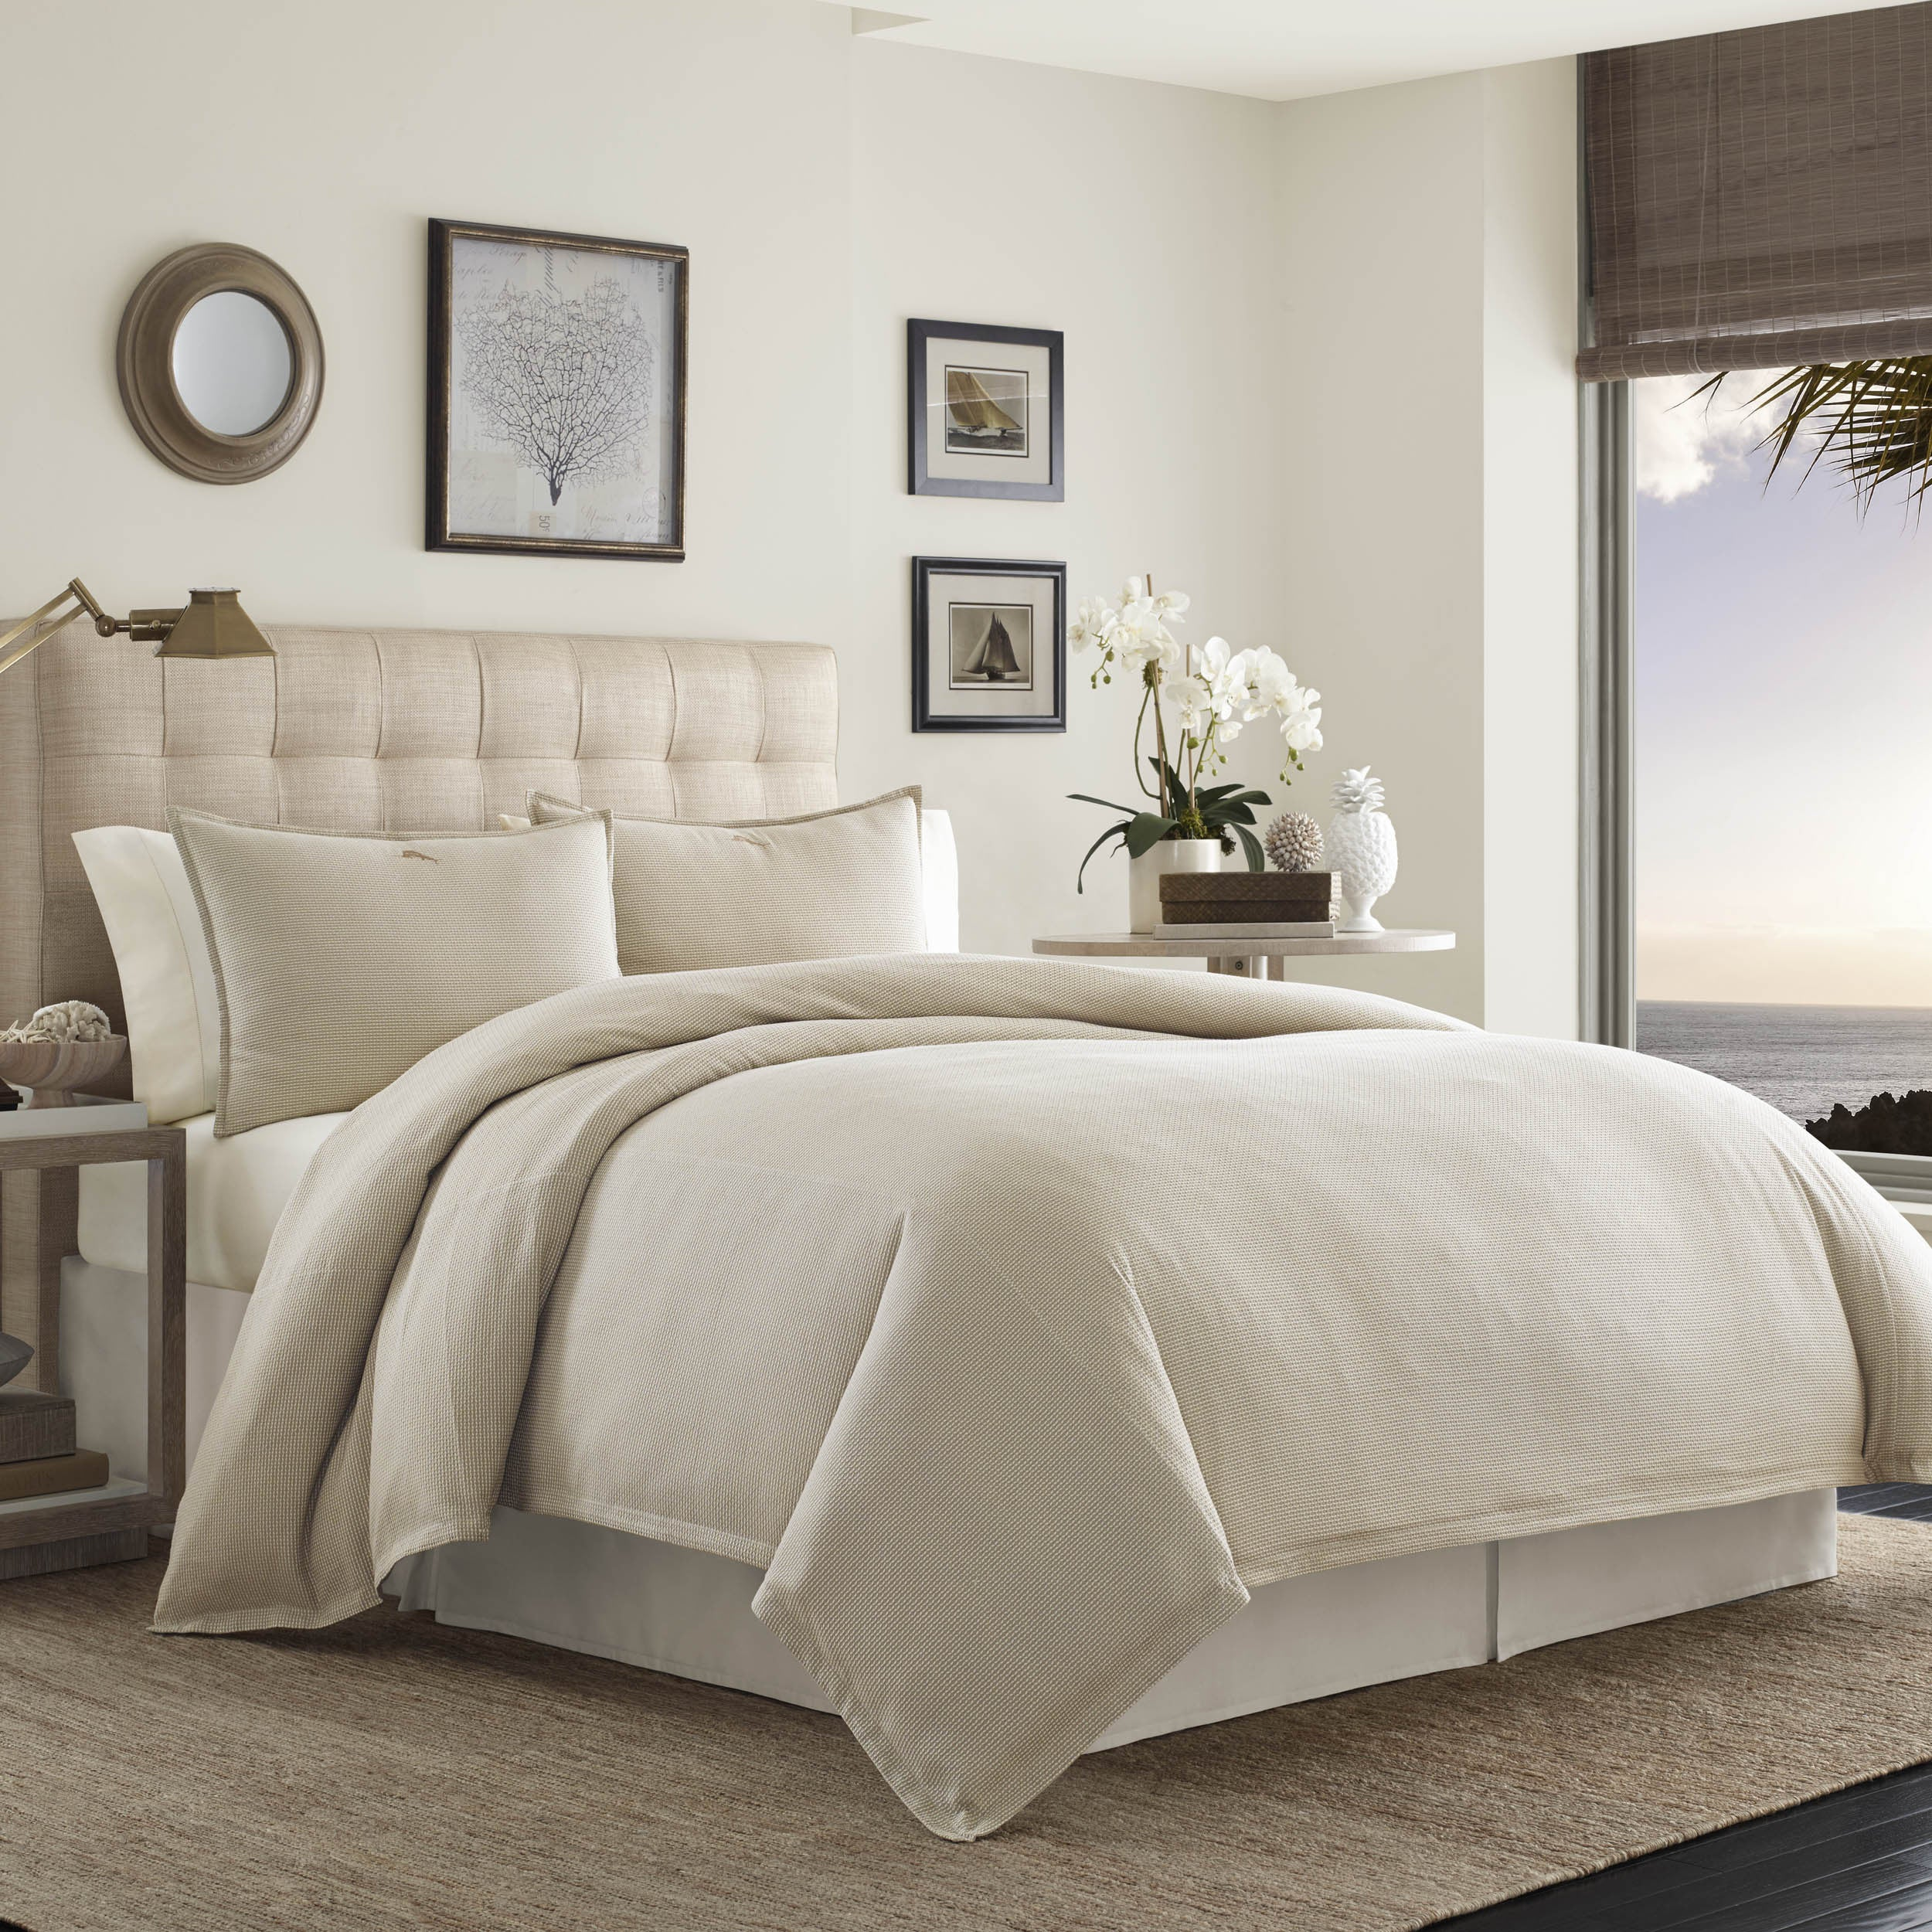 comforter overstock tommy today free bedding palms bath set shipping product raffia bahama king